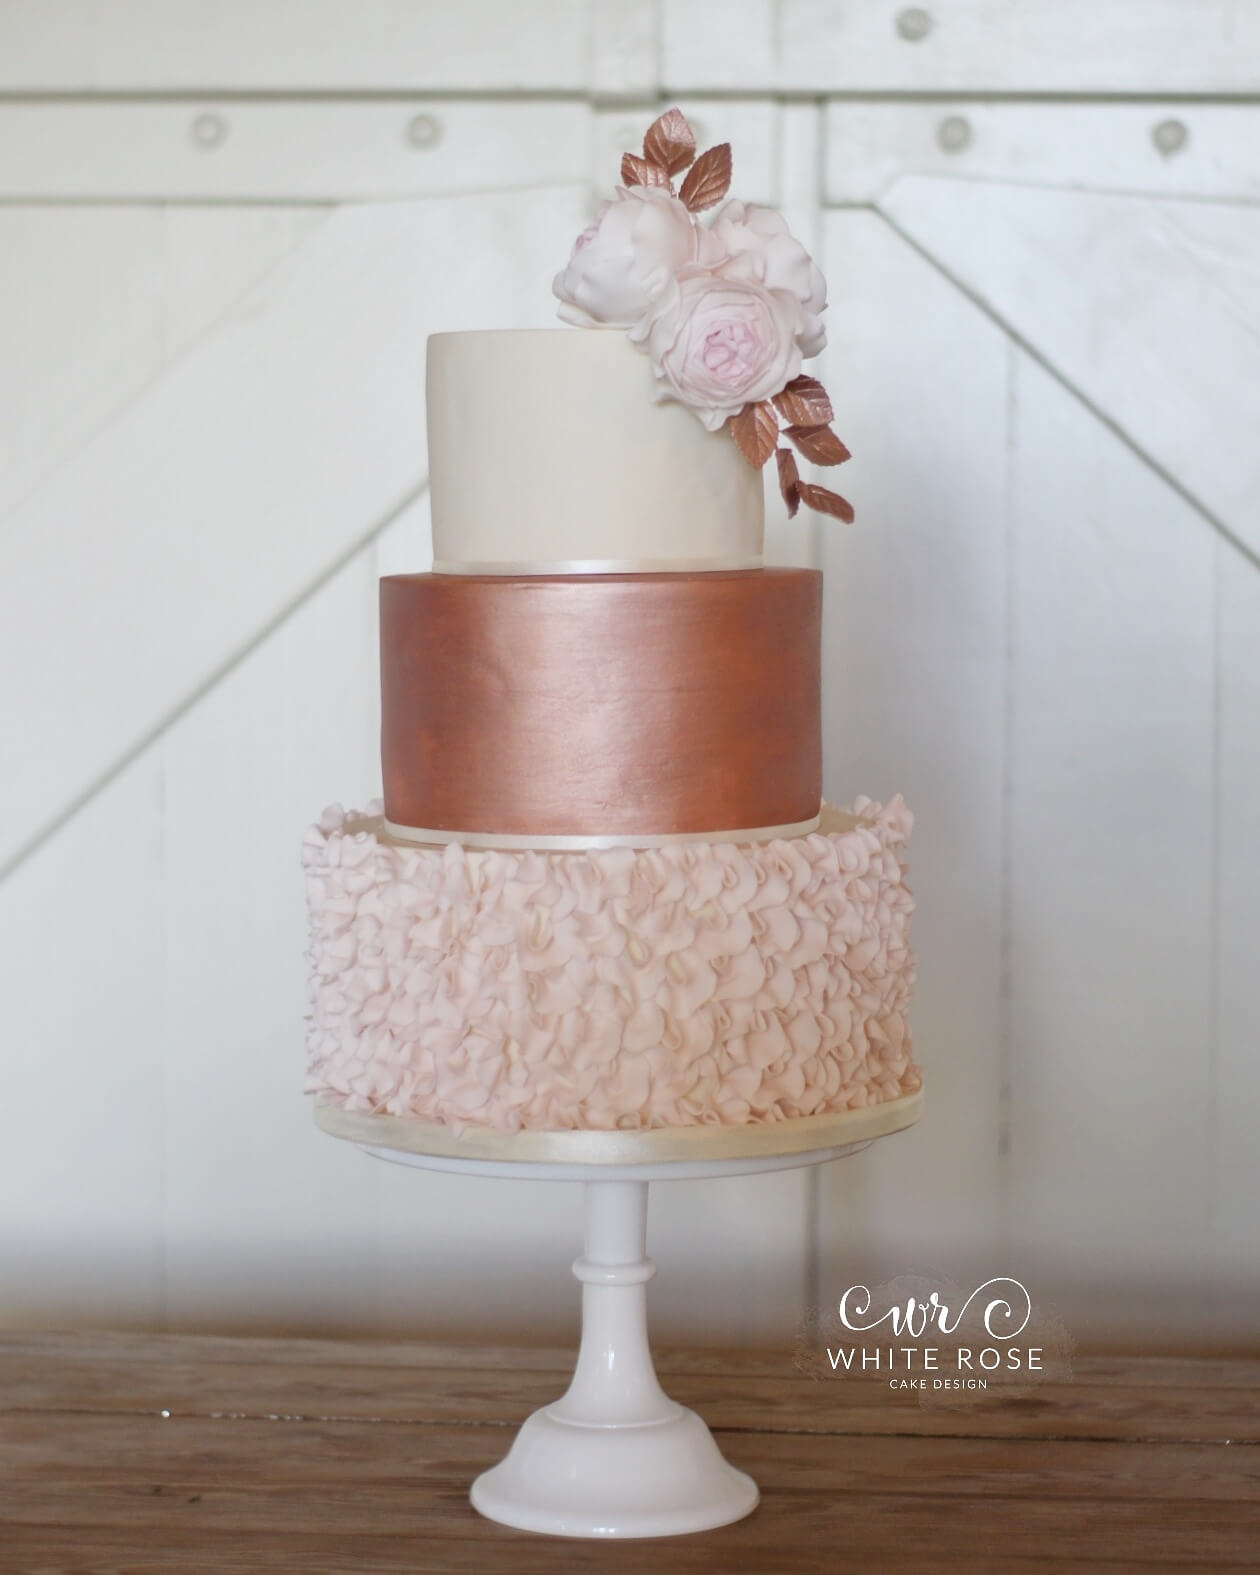 Rose Gold and Ruffles Wedding Cake with Blush Roses by White Rose Cake Design Luxury Wedding Cake Maker West Yorkshire